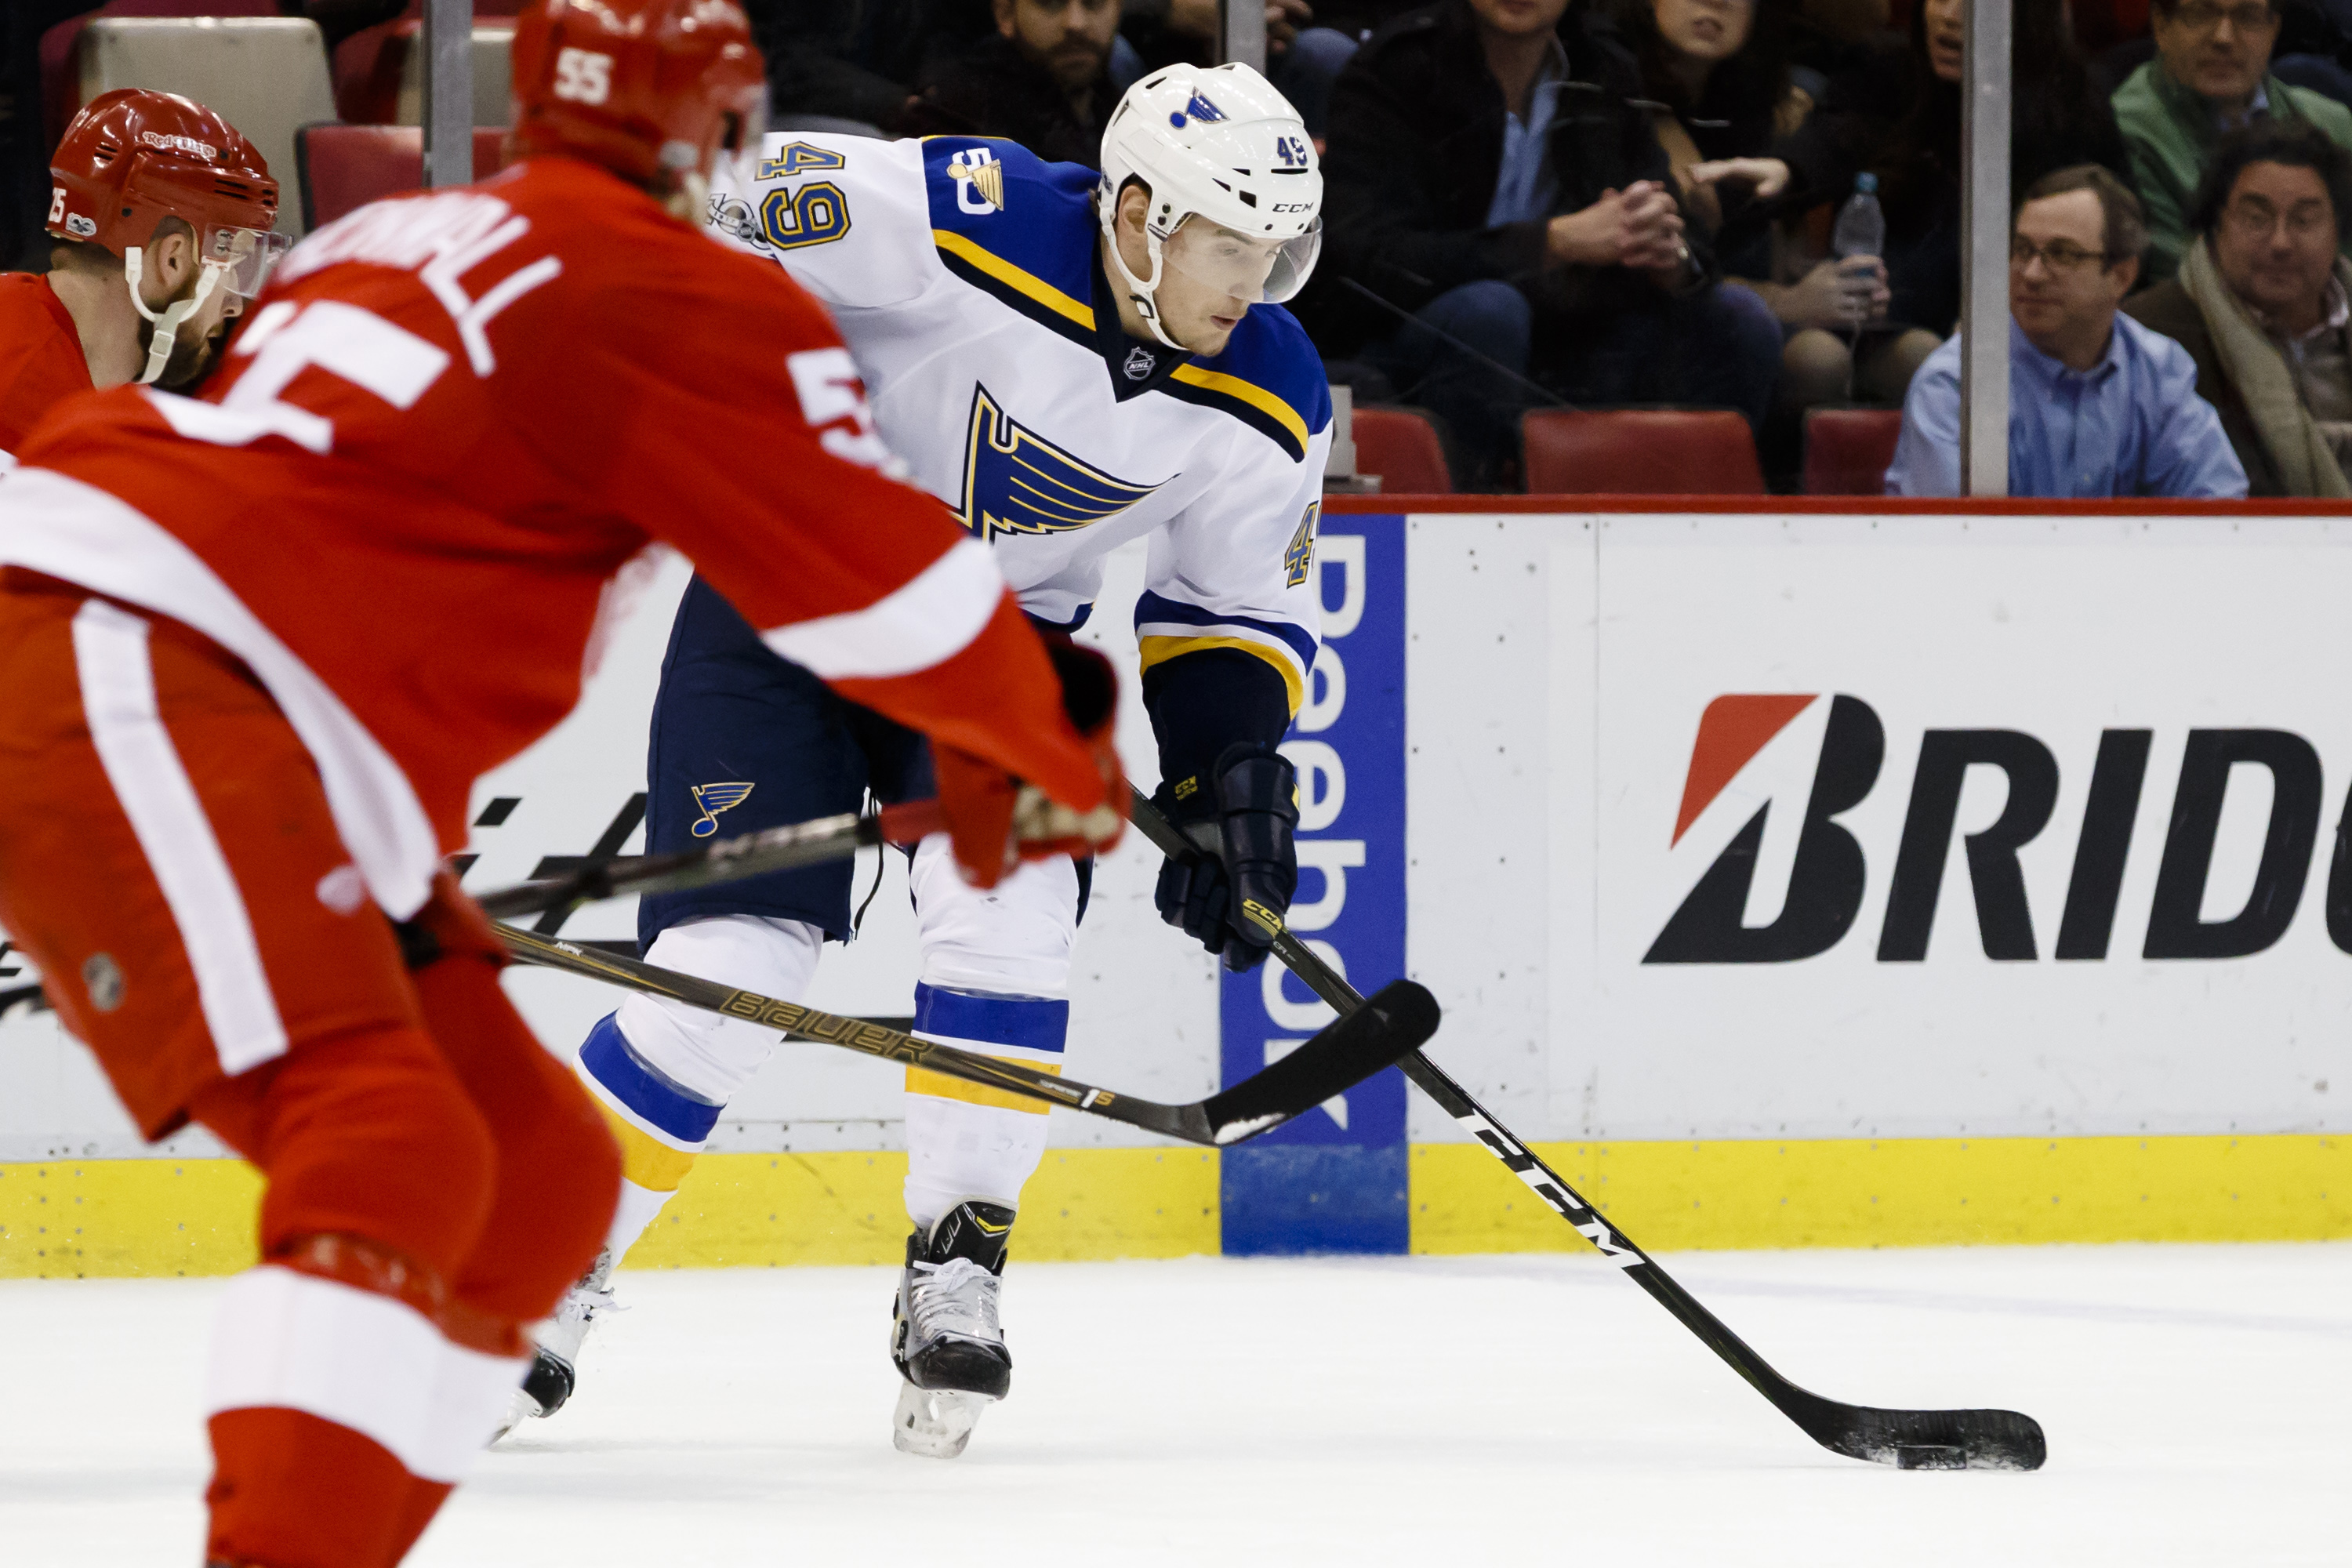 9880000-nhl-st.-louis-blues-at-detroit-red-wings